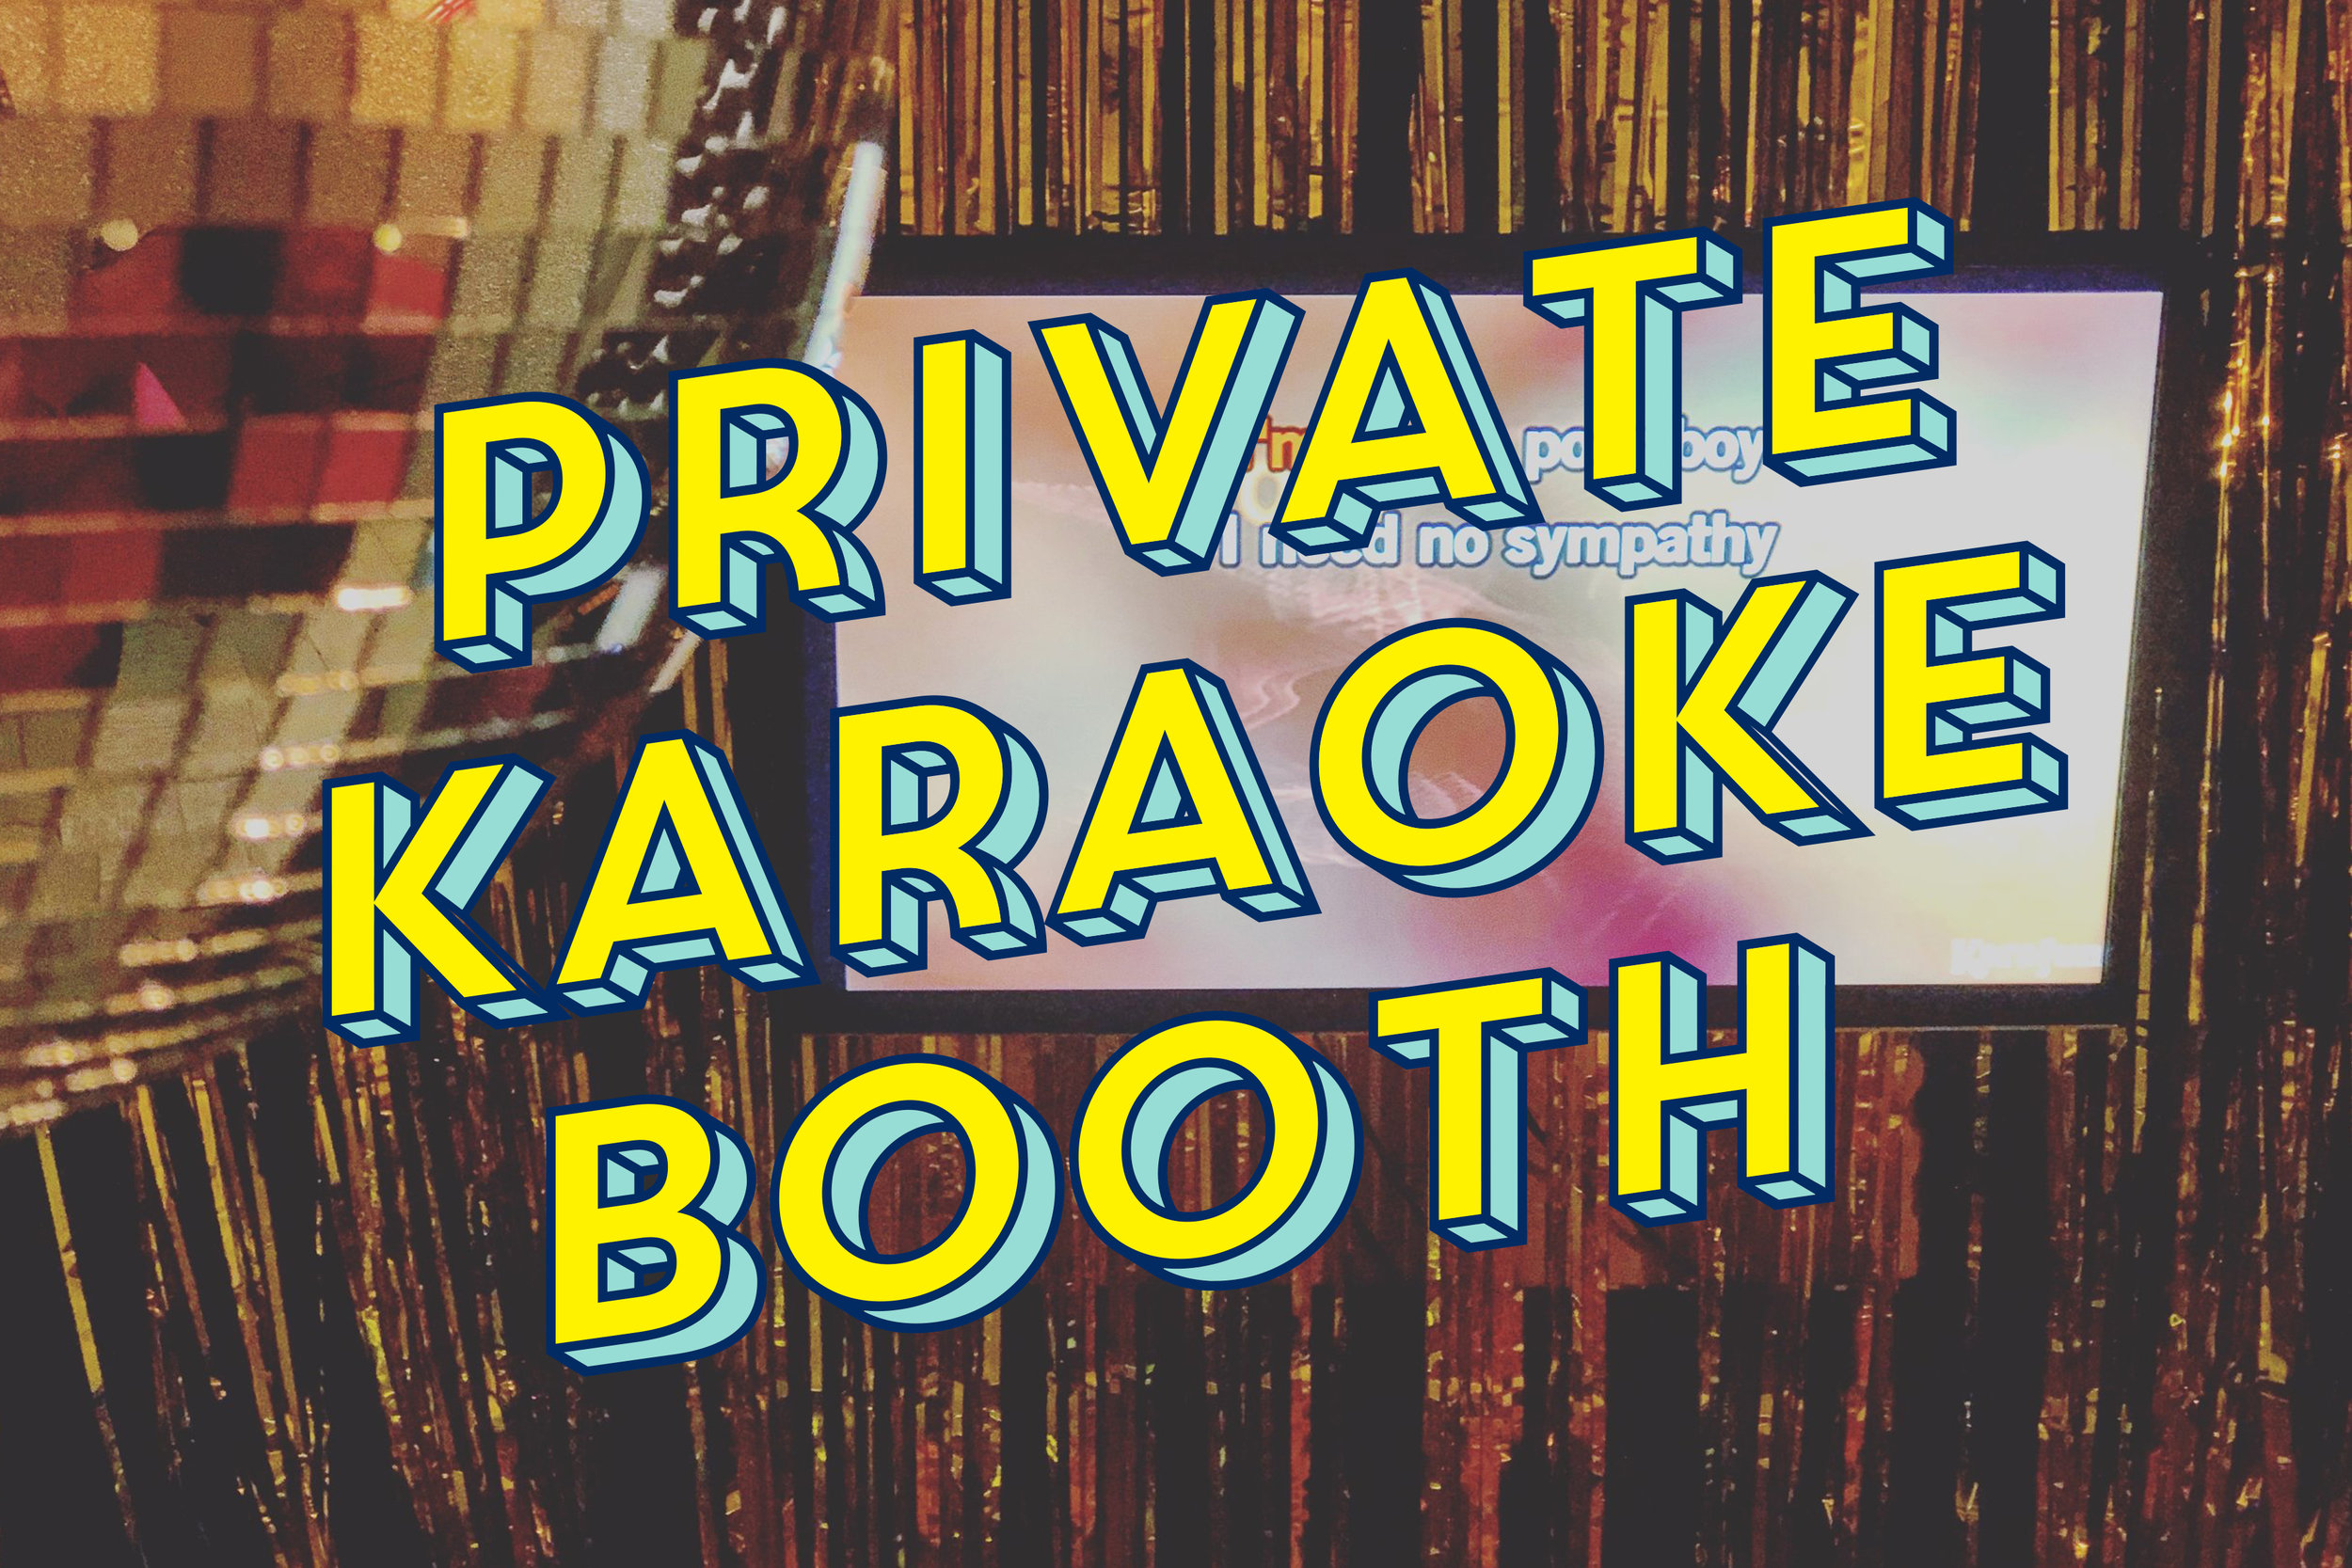 Karaoke Booth   Private Karaoke booth for up to 10 people.  £25 One Hour £36 Two Hours    BOOK NOW